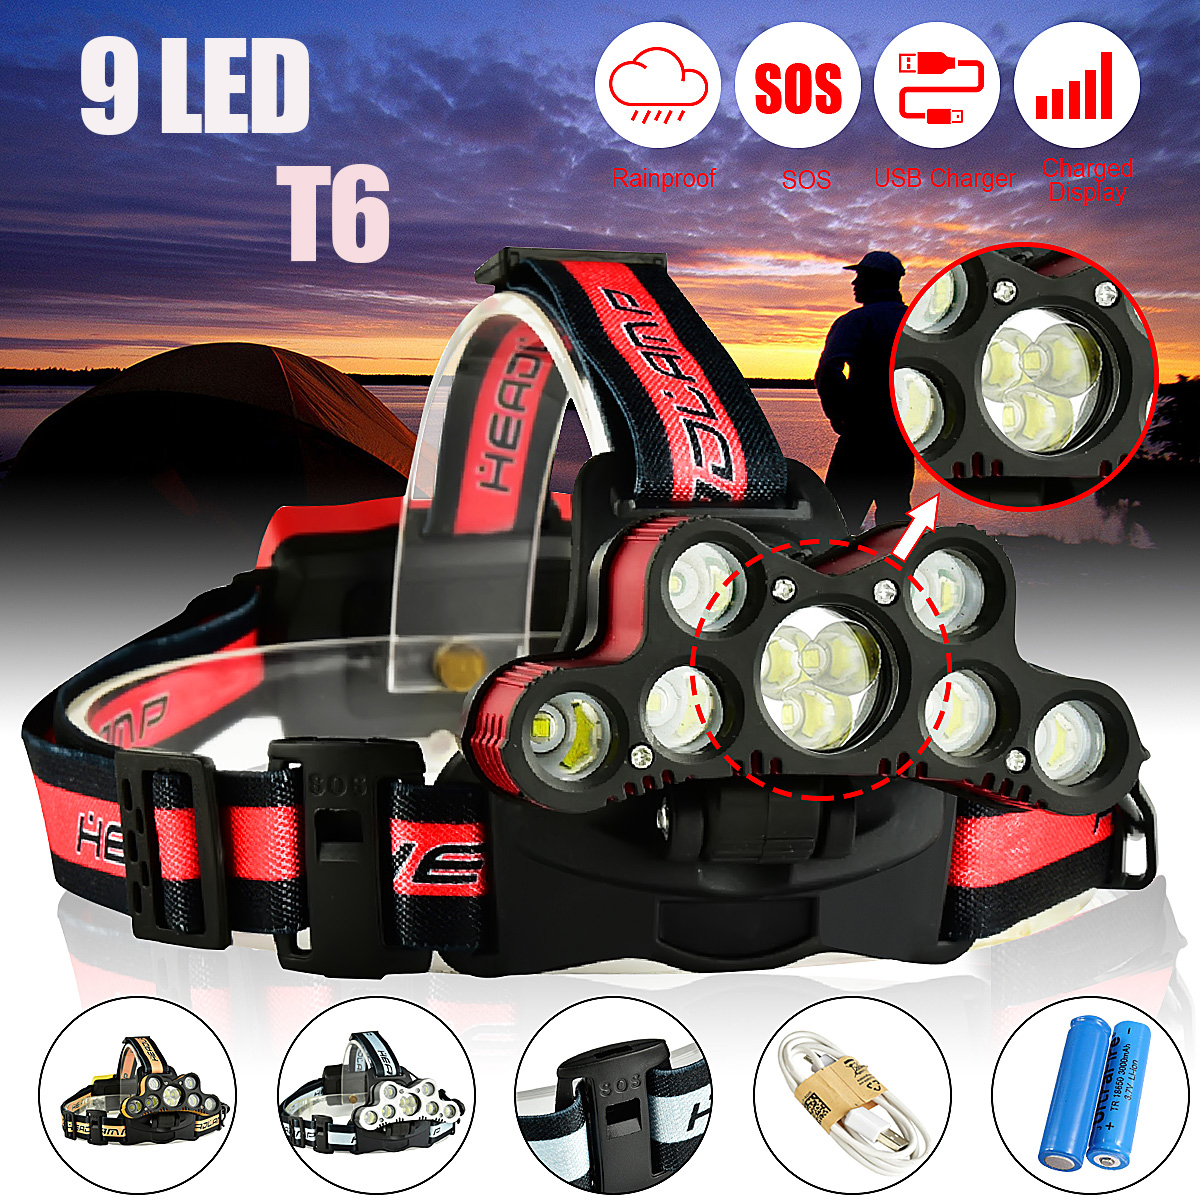 7000LM 9 T6 LED Headlamp USB Rechargeable 18650 Zoomable Headlight Torch Lamp + 2Pcs 18650 Battery + USB Cable -SO S Help whistle